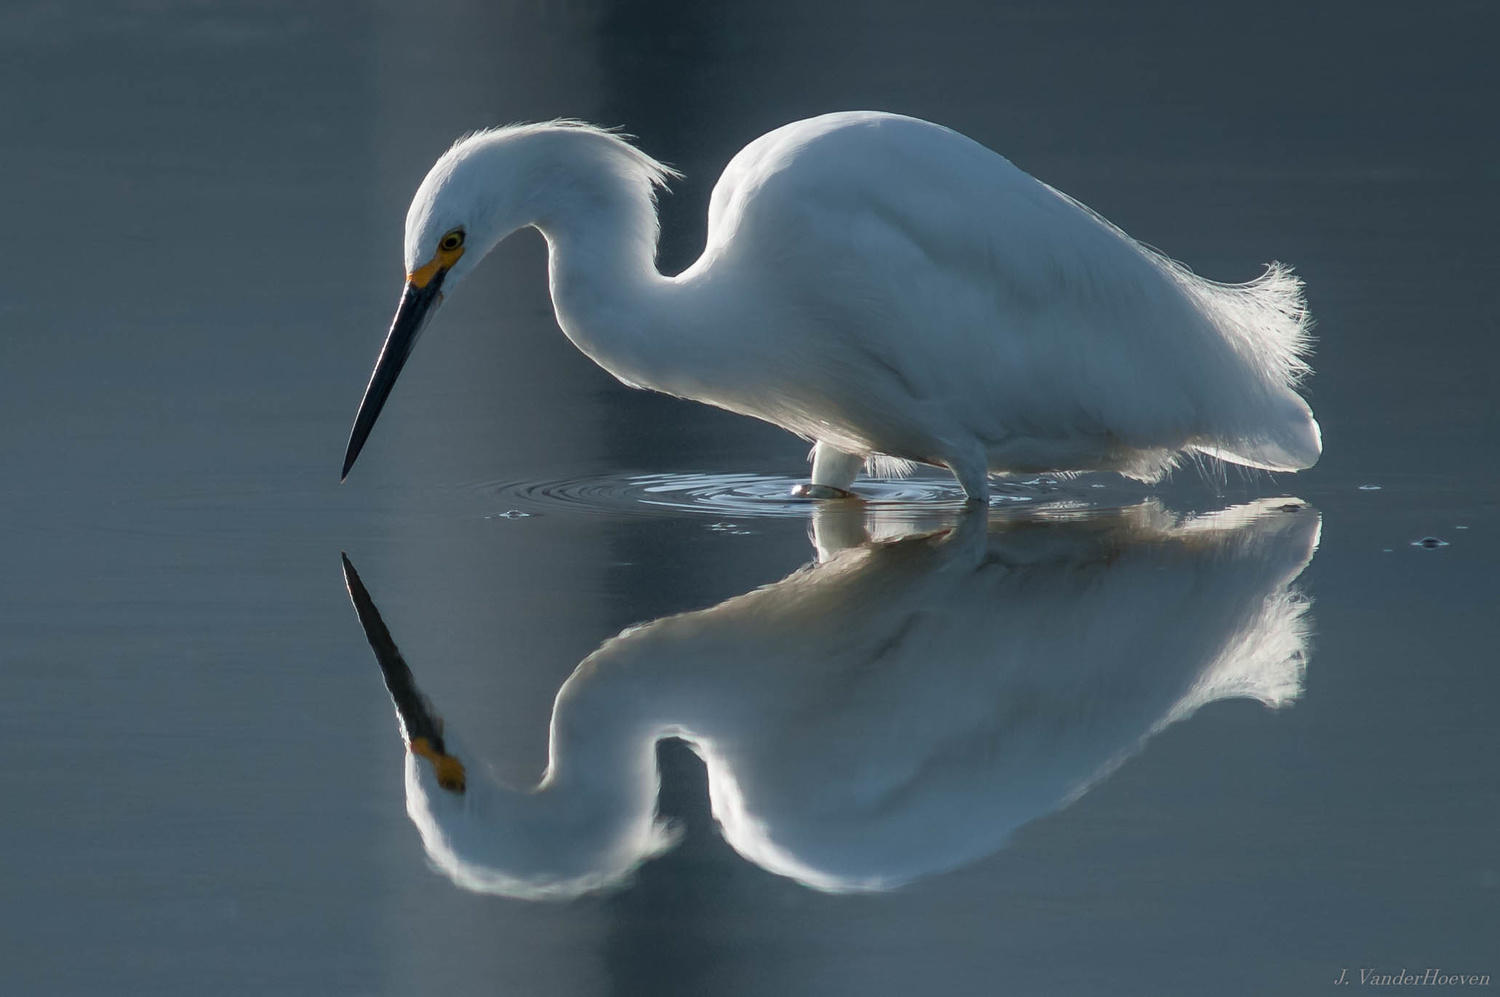 Backlight Silhouette - Snowy Egret by Jake VanderHoeven